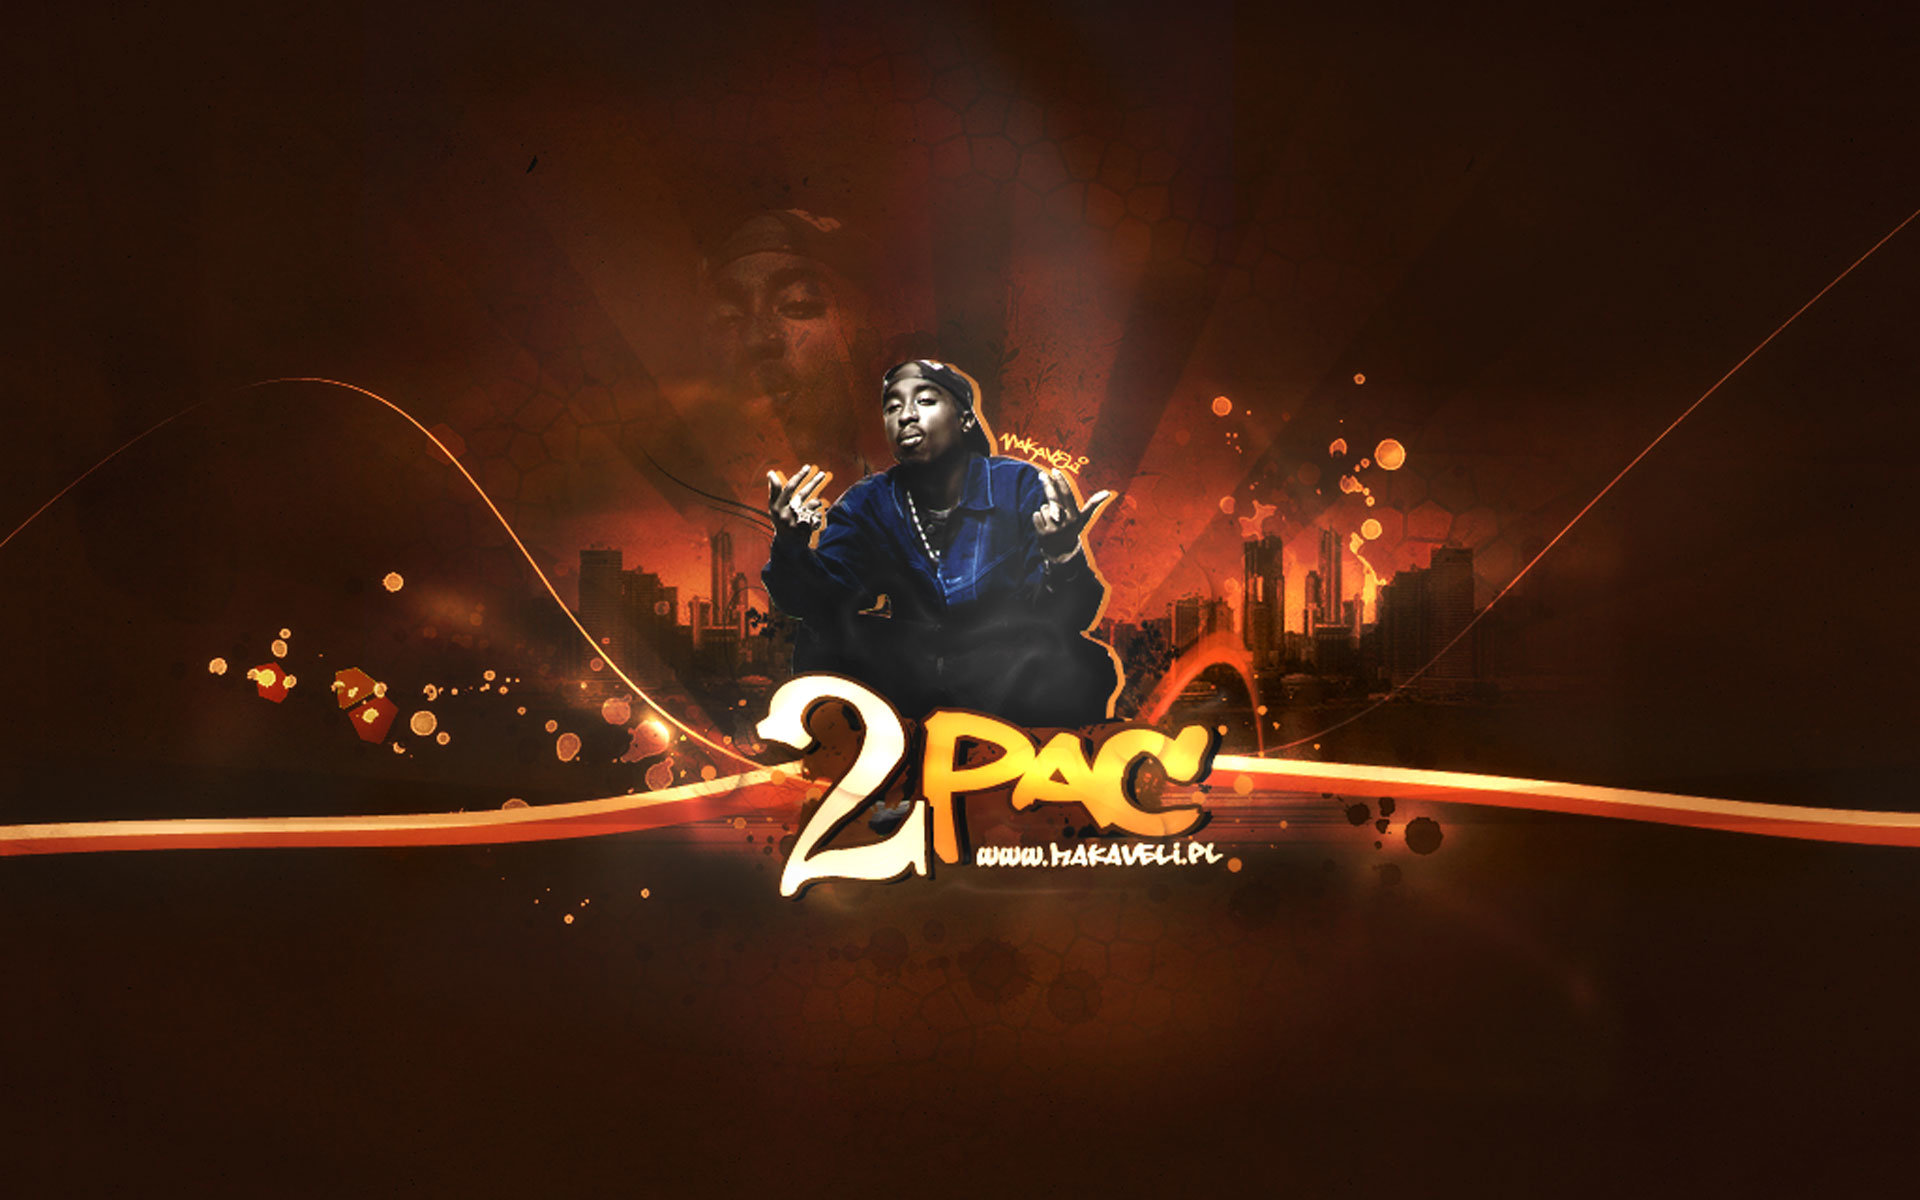 Download hd 1920x1200 2pac (tupac) desktop wallpaper ID:259124 for free